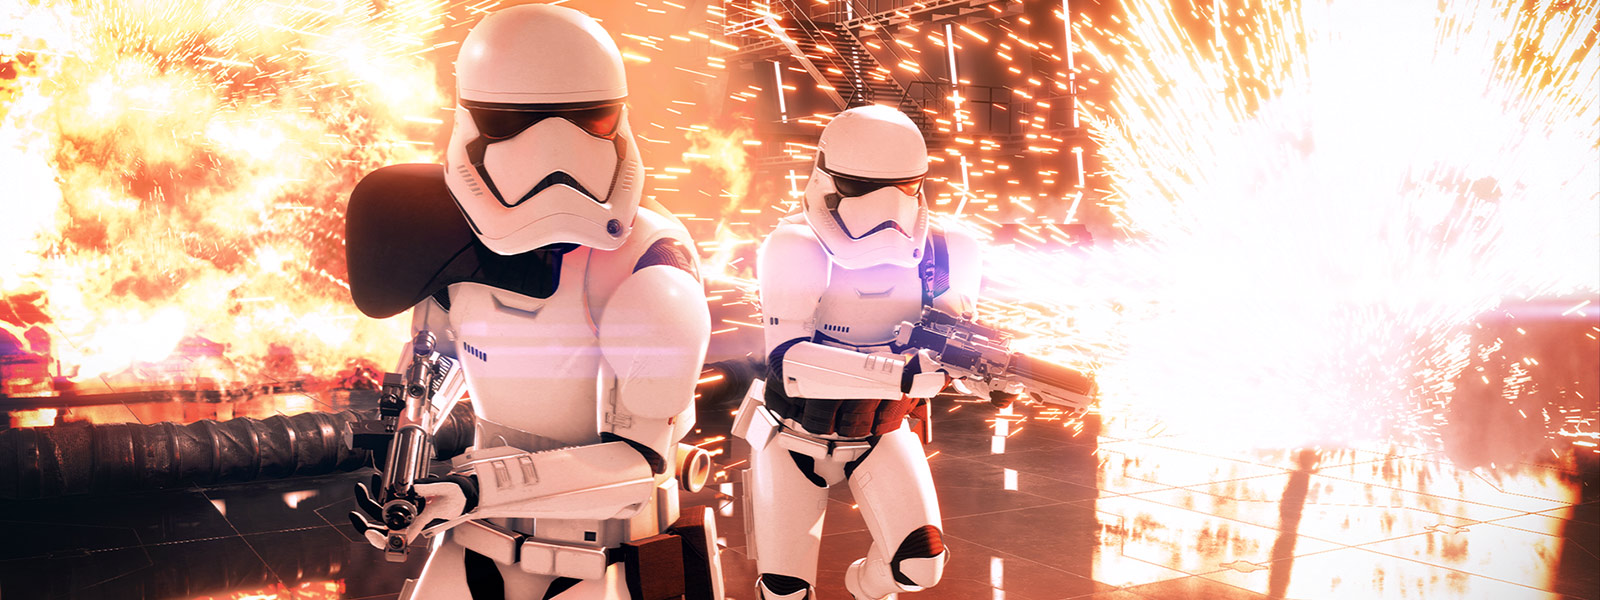 two storm troopers near explosion